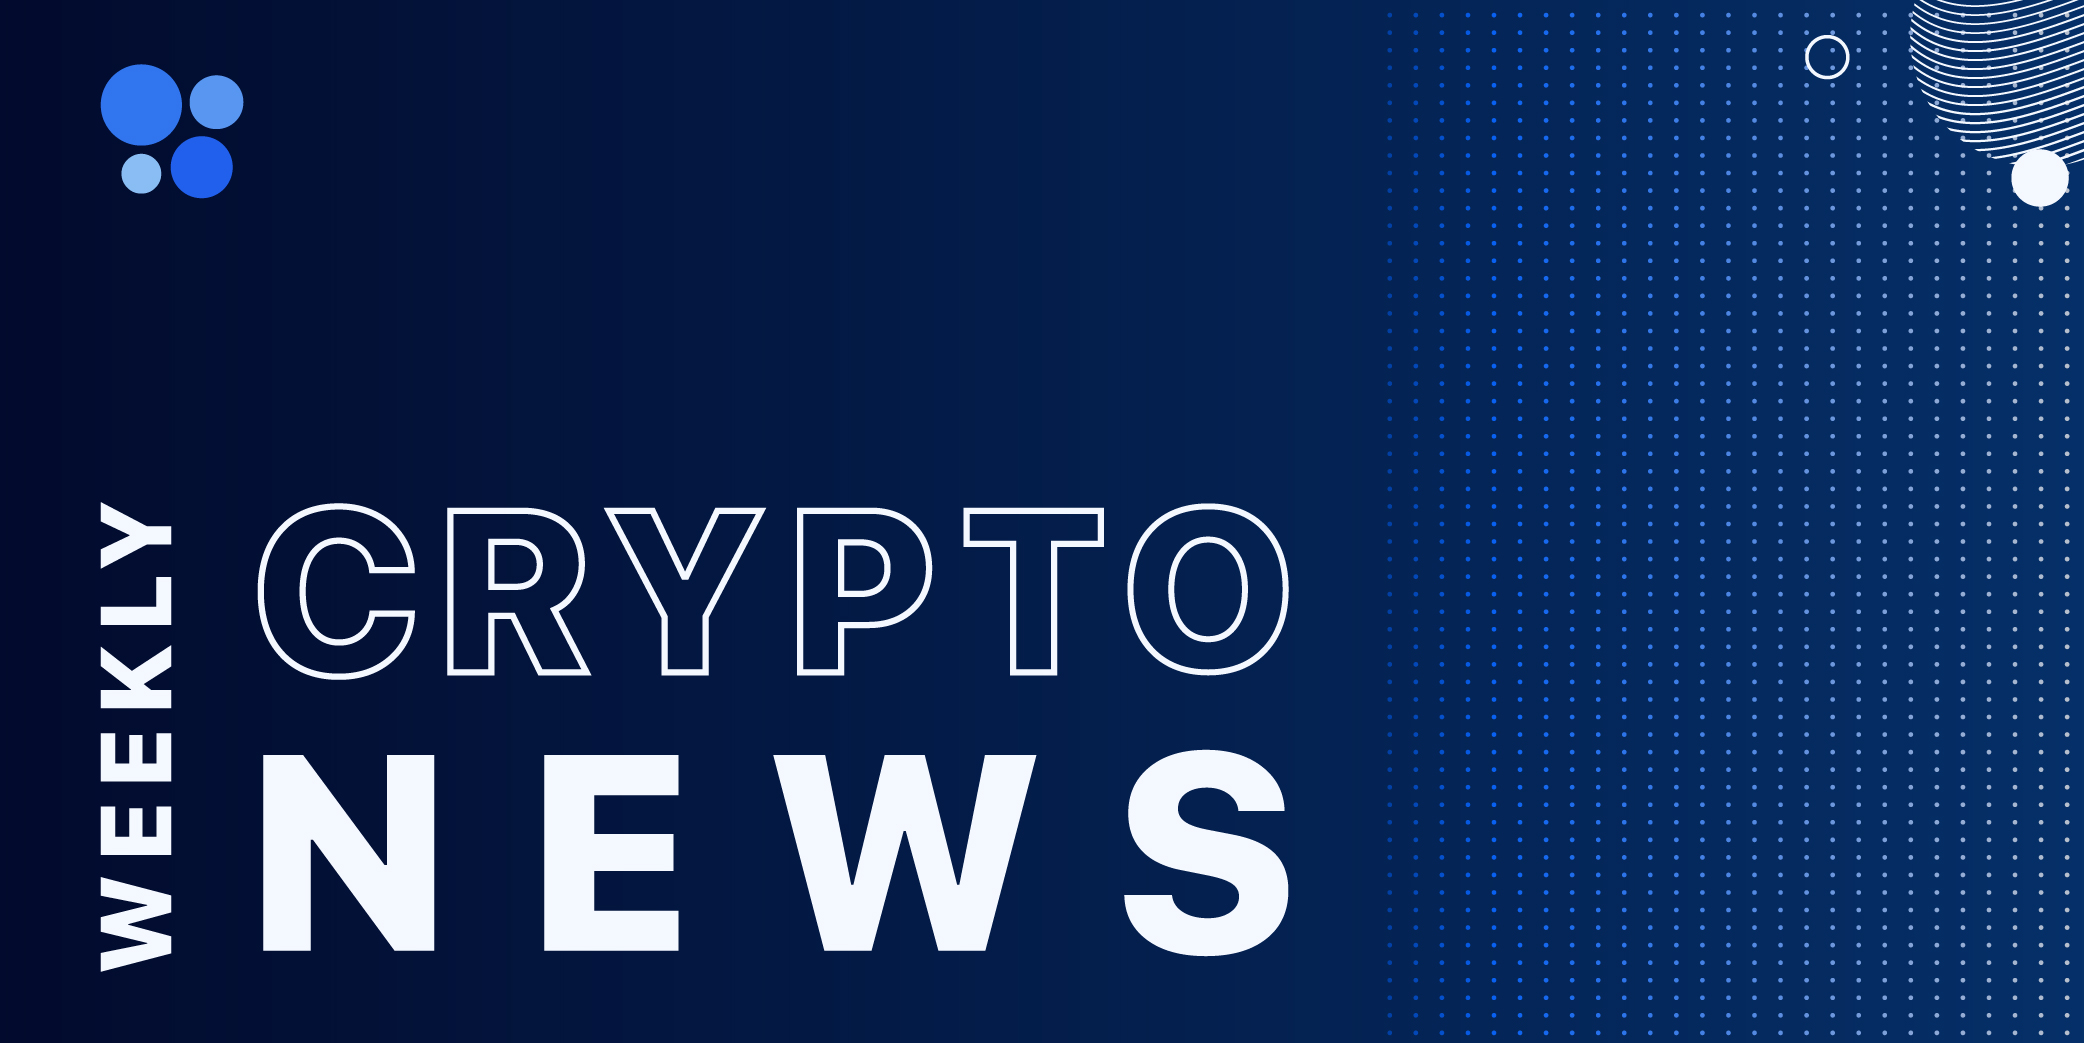 May 16th crypto news roundup